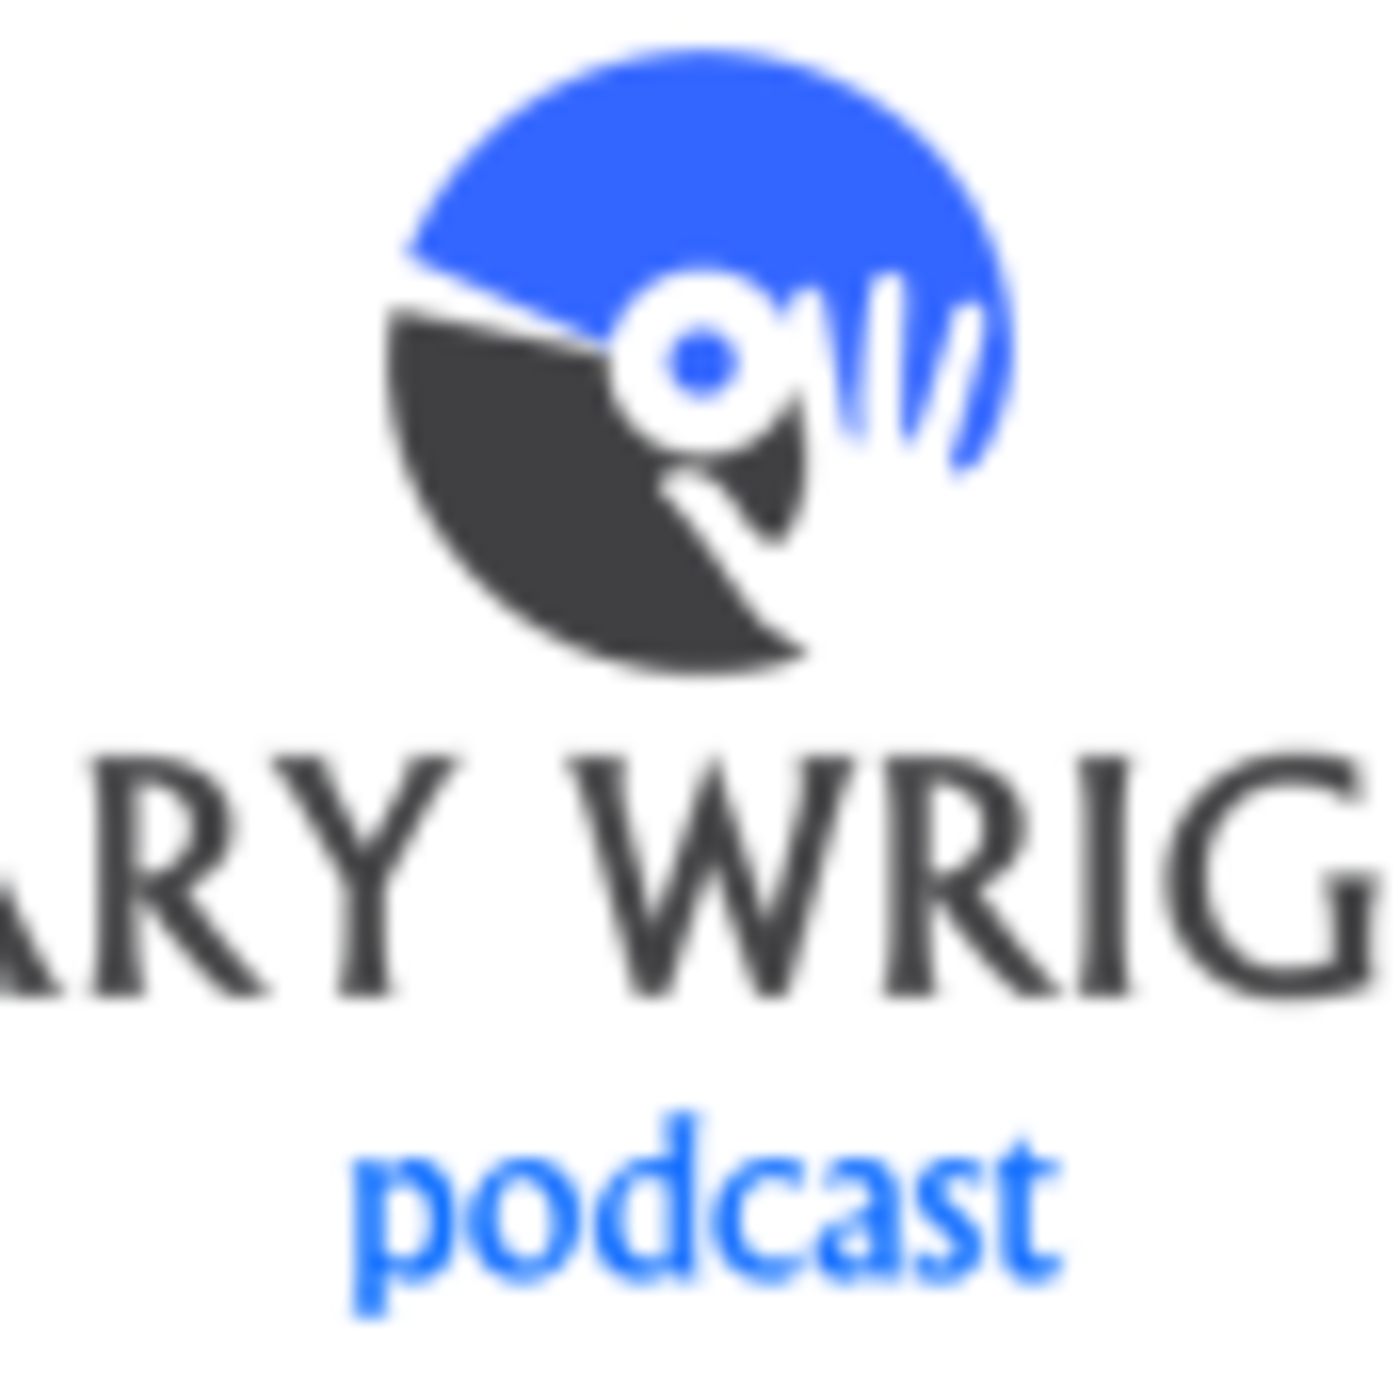 Gary Wright Podcast